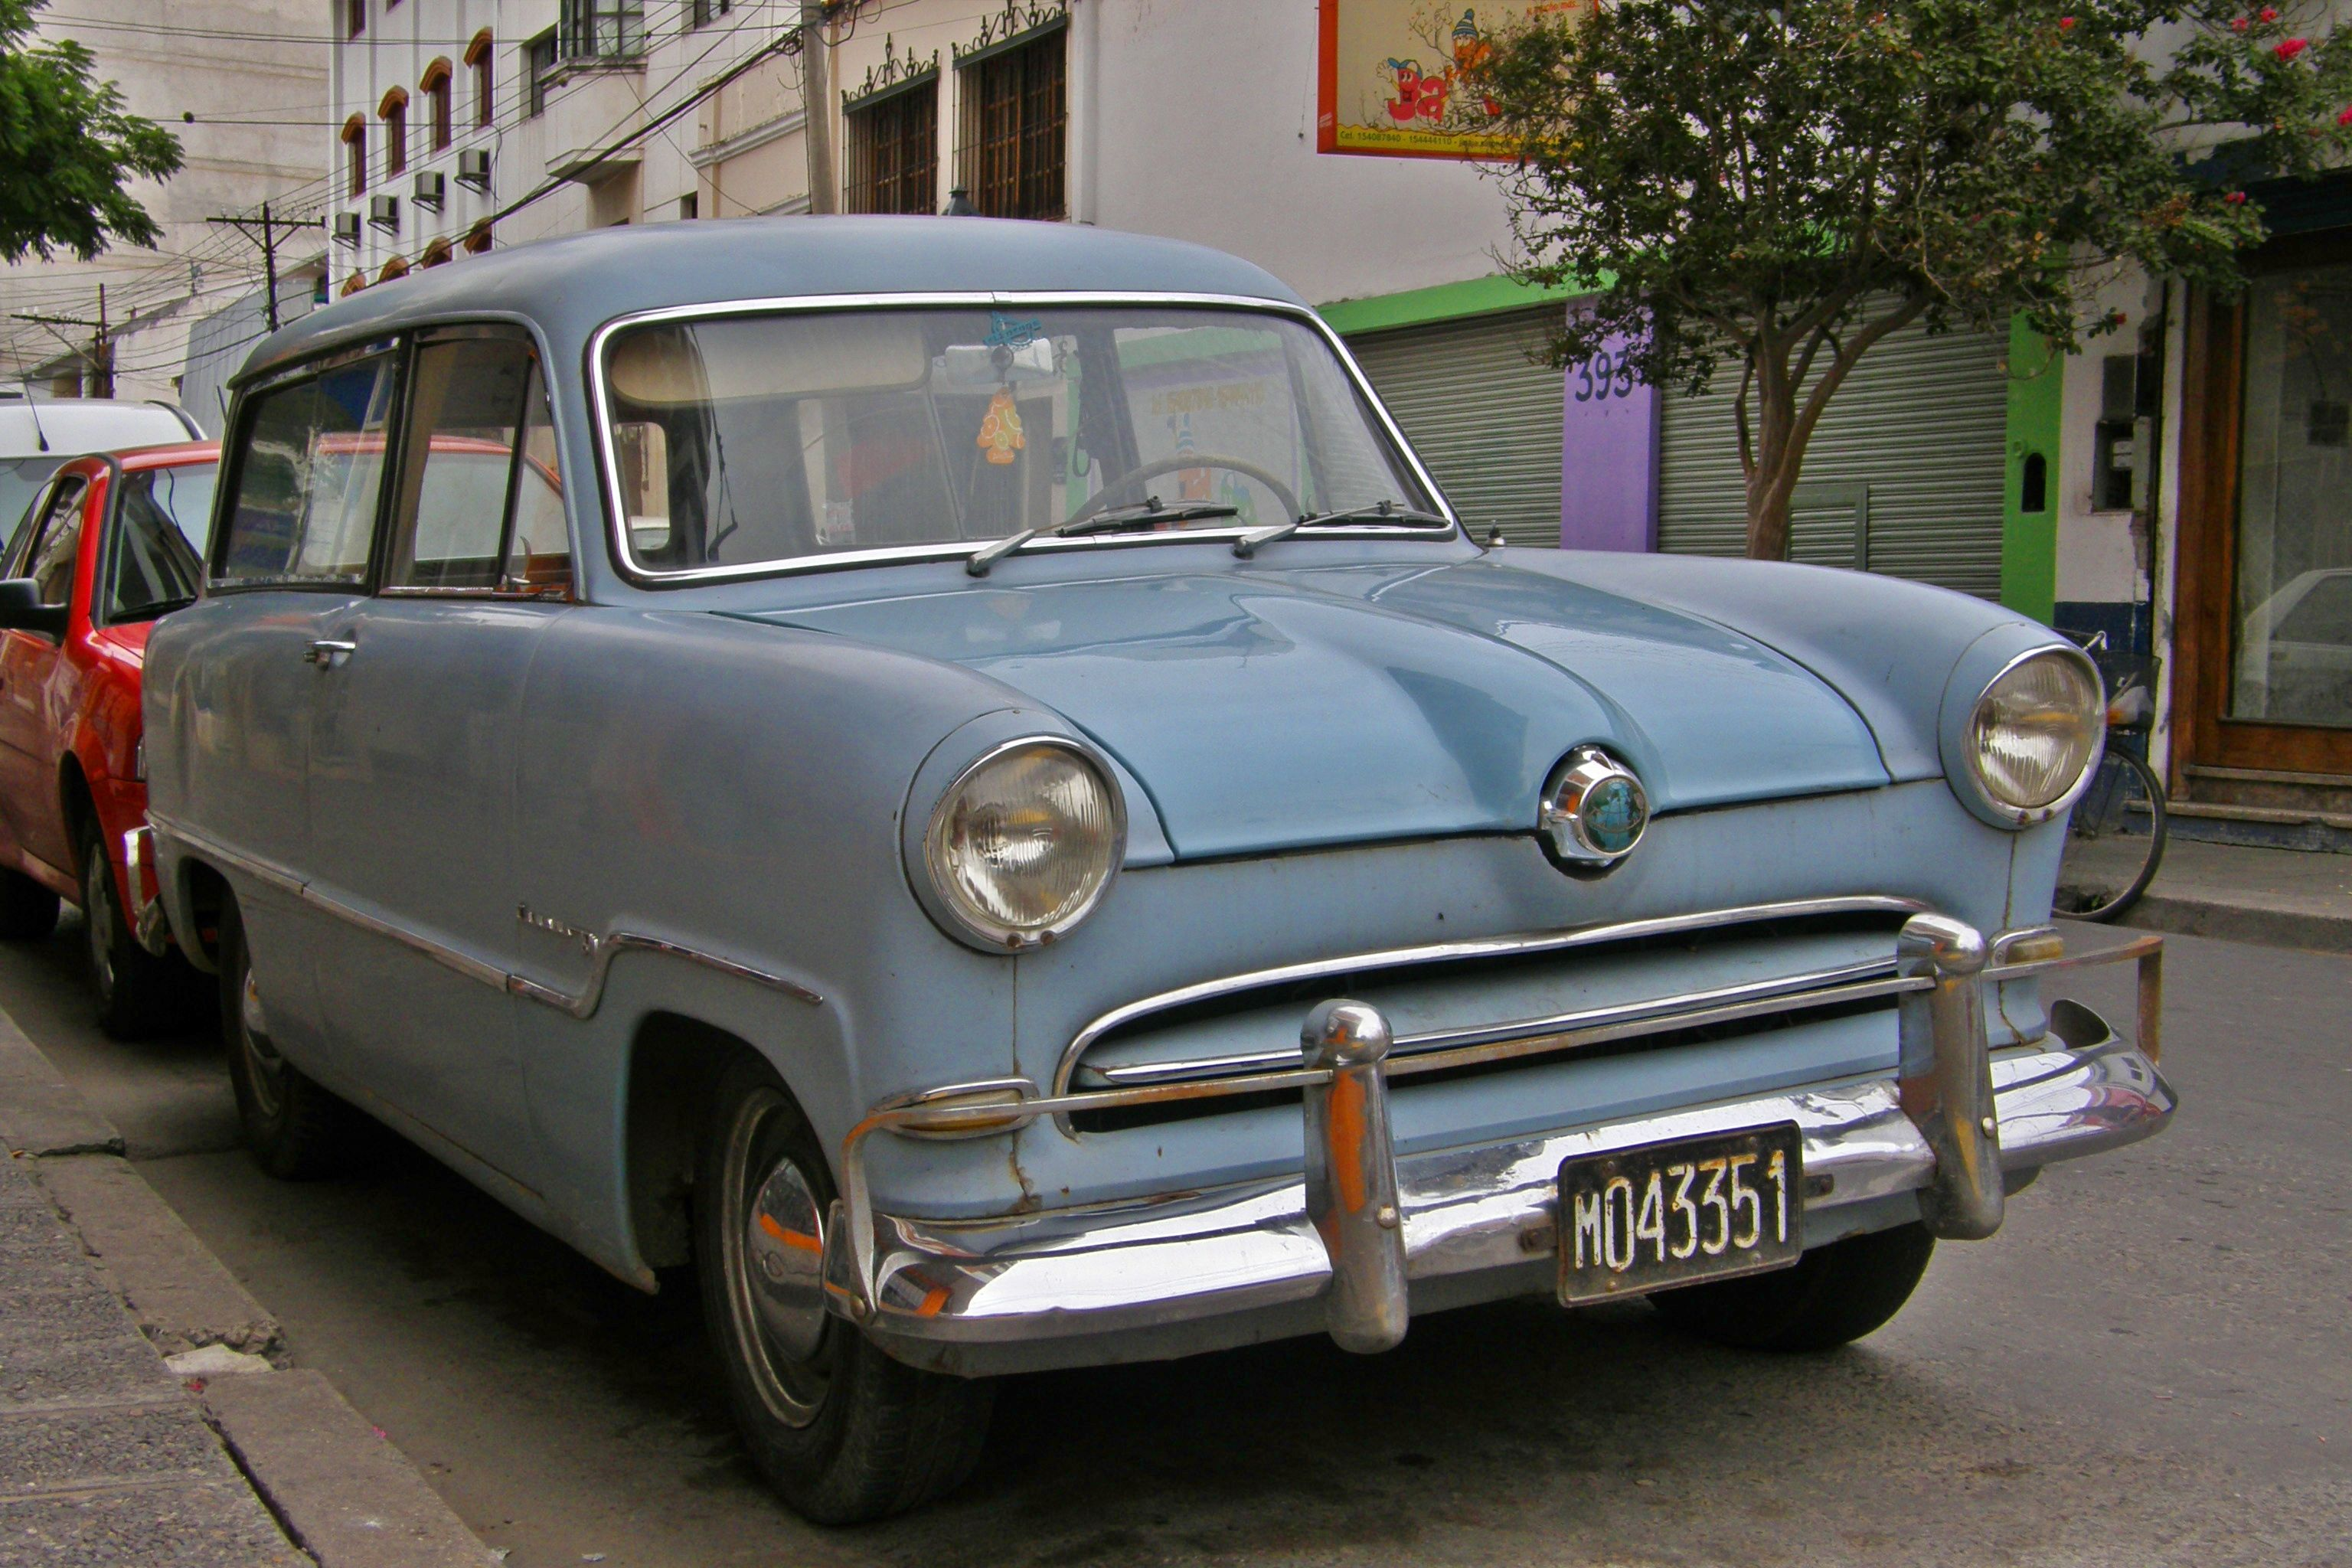 1957 ford taunus 15 m break p1 cars english ford taunus p1 pinterest ford cars and. Black Bedroom Furniture Sets. Home Design Ideas